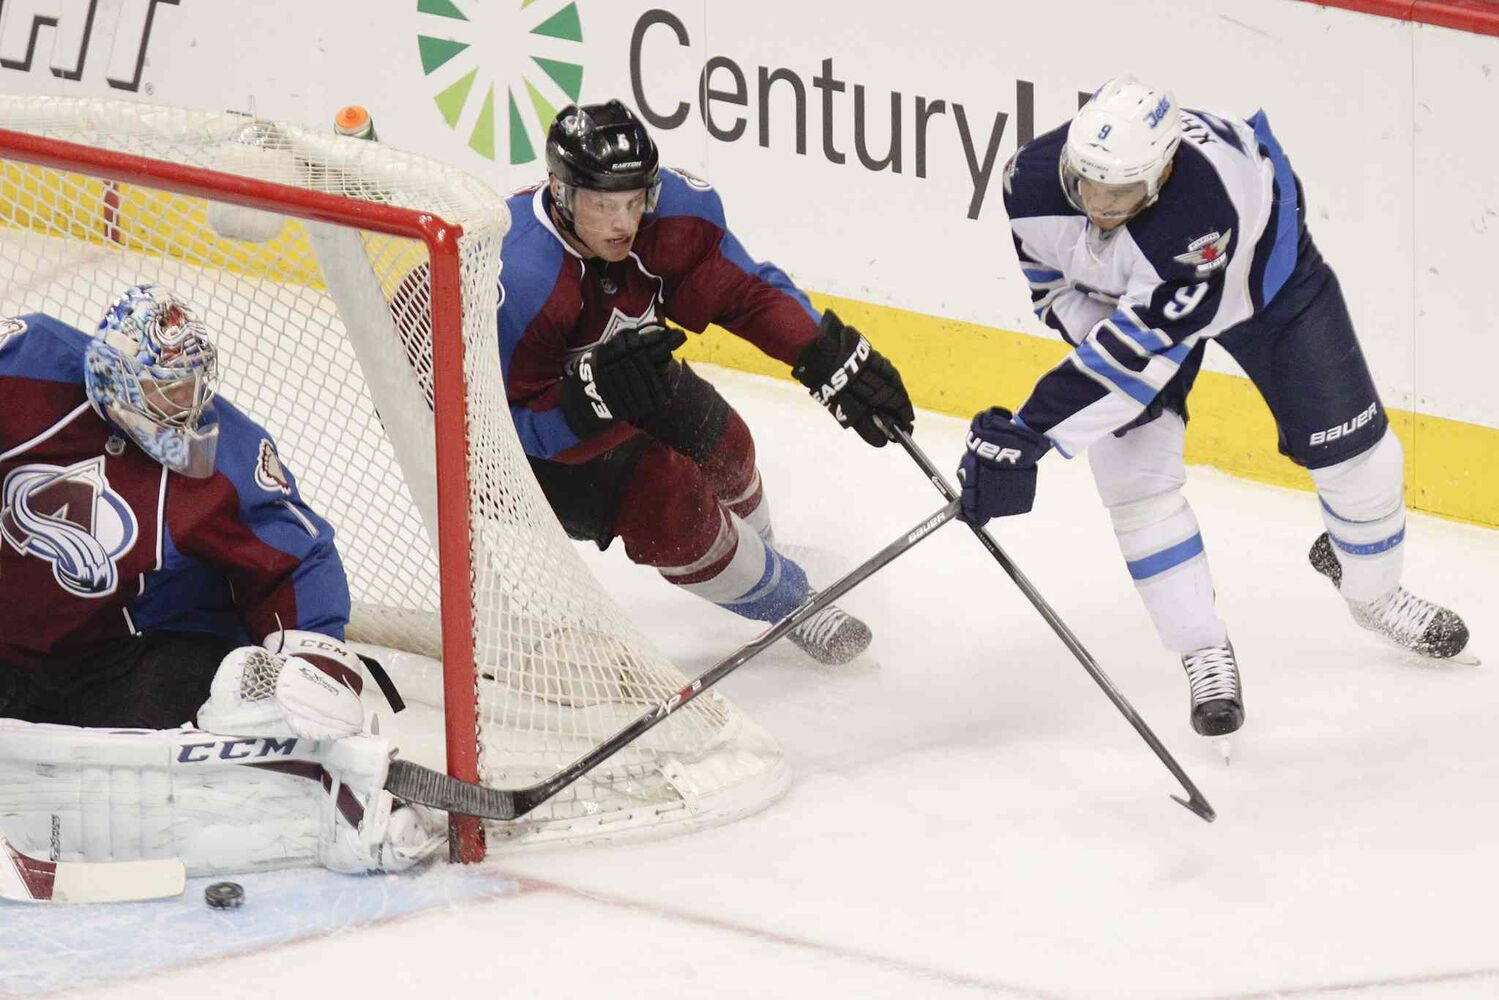 Winnipeg Jets forward Evander Kane tries a wraparound against Colorado Avalanche goalie Semyon Varlamov. (BARRY GUTIERREZ / THE ASSOCIATED PRESS)